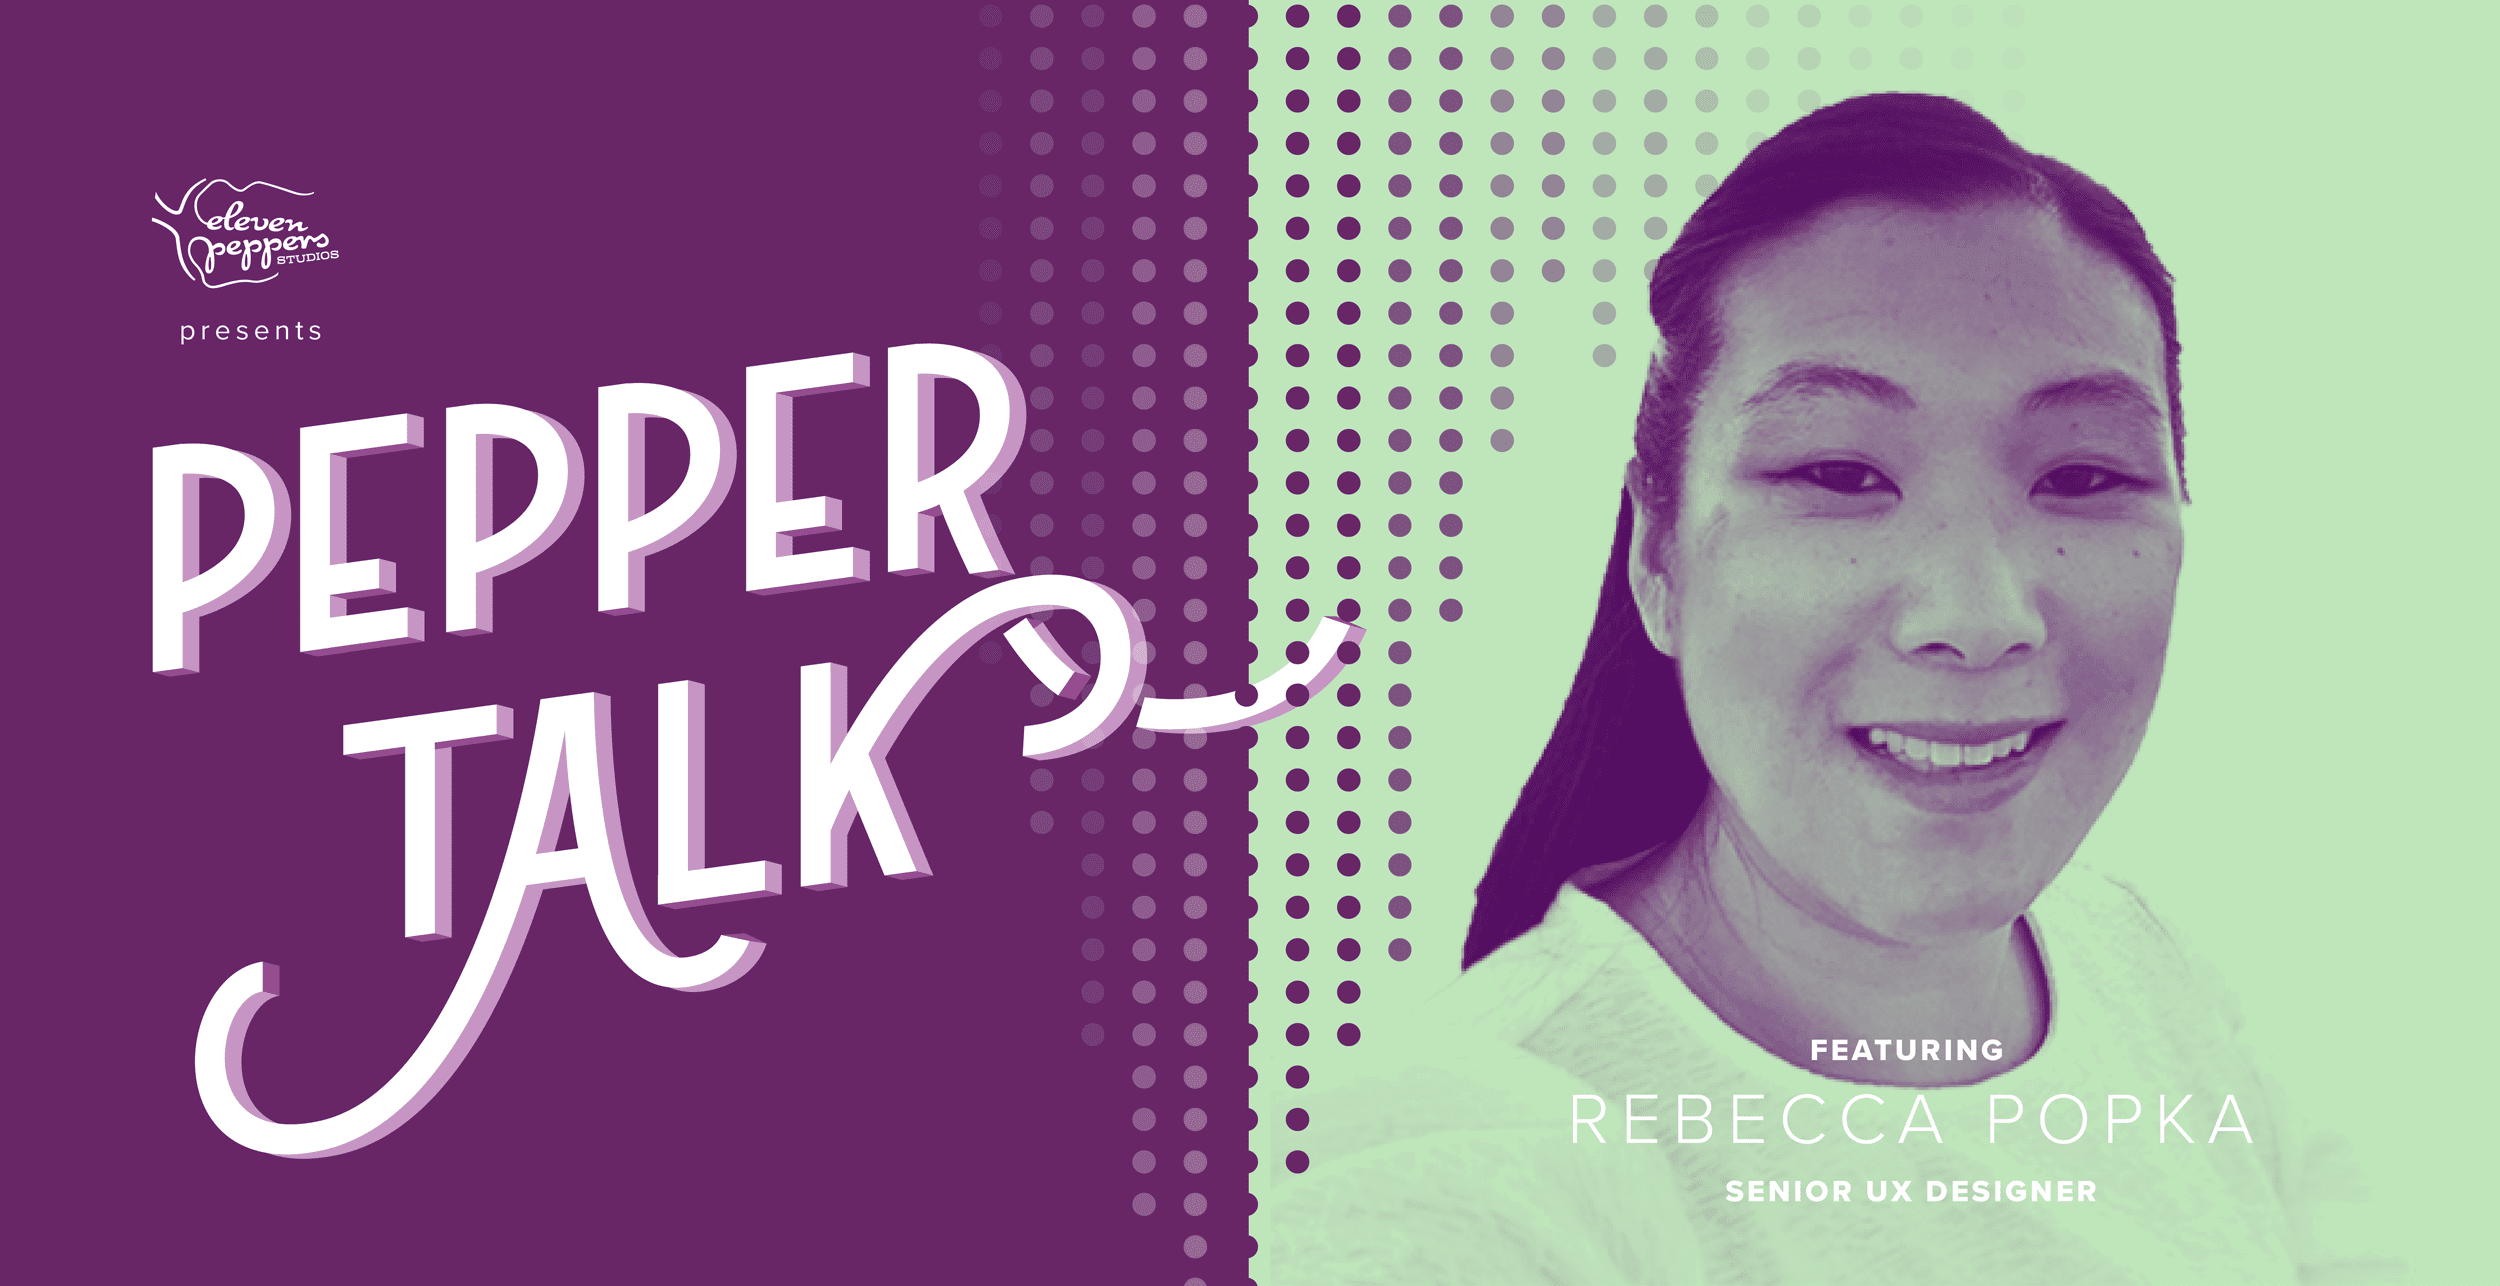 Pepper Talk with Rebecca Popka